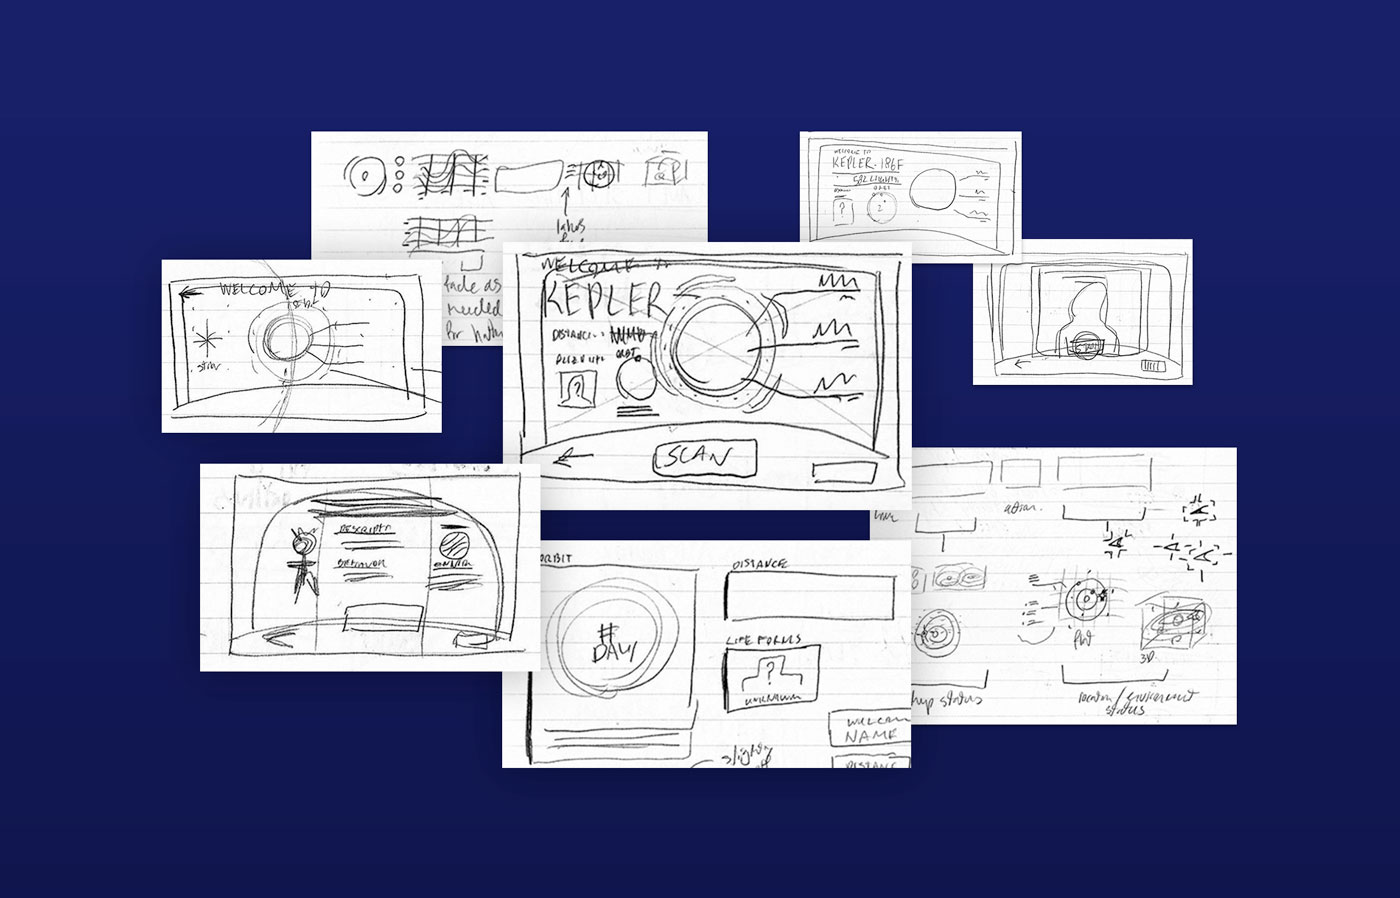 A pencil sketched layout from the UI design process, exploring a possible layout for the content.